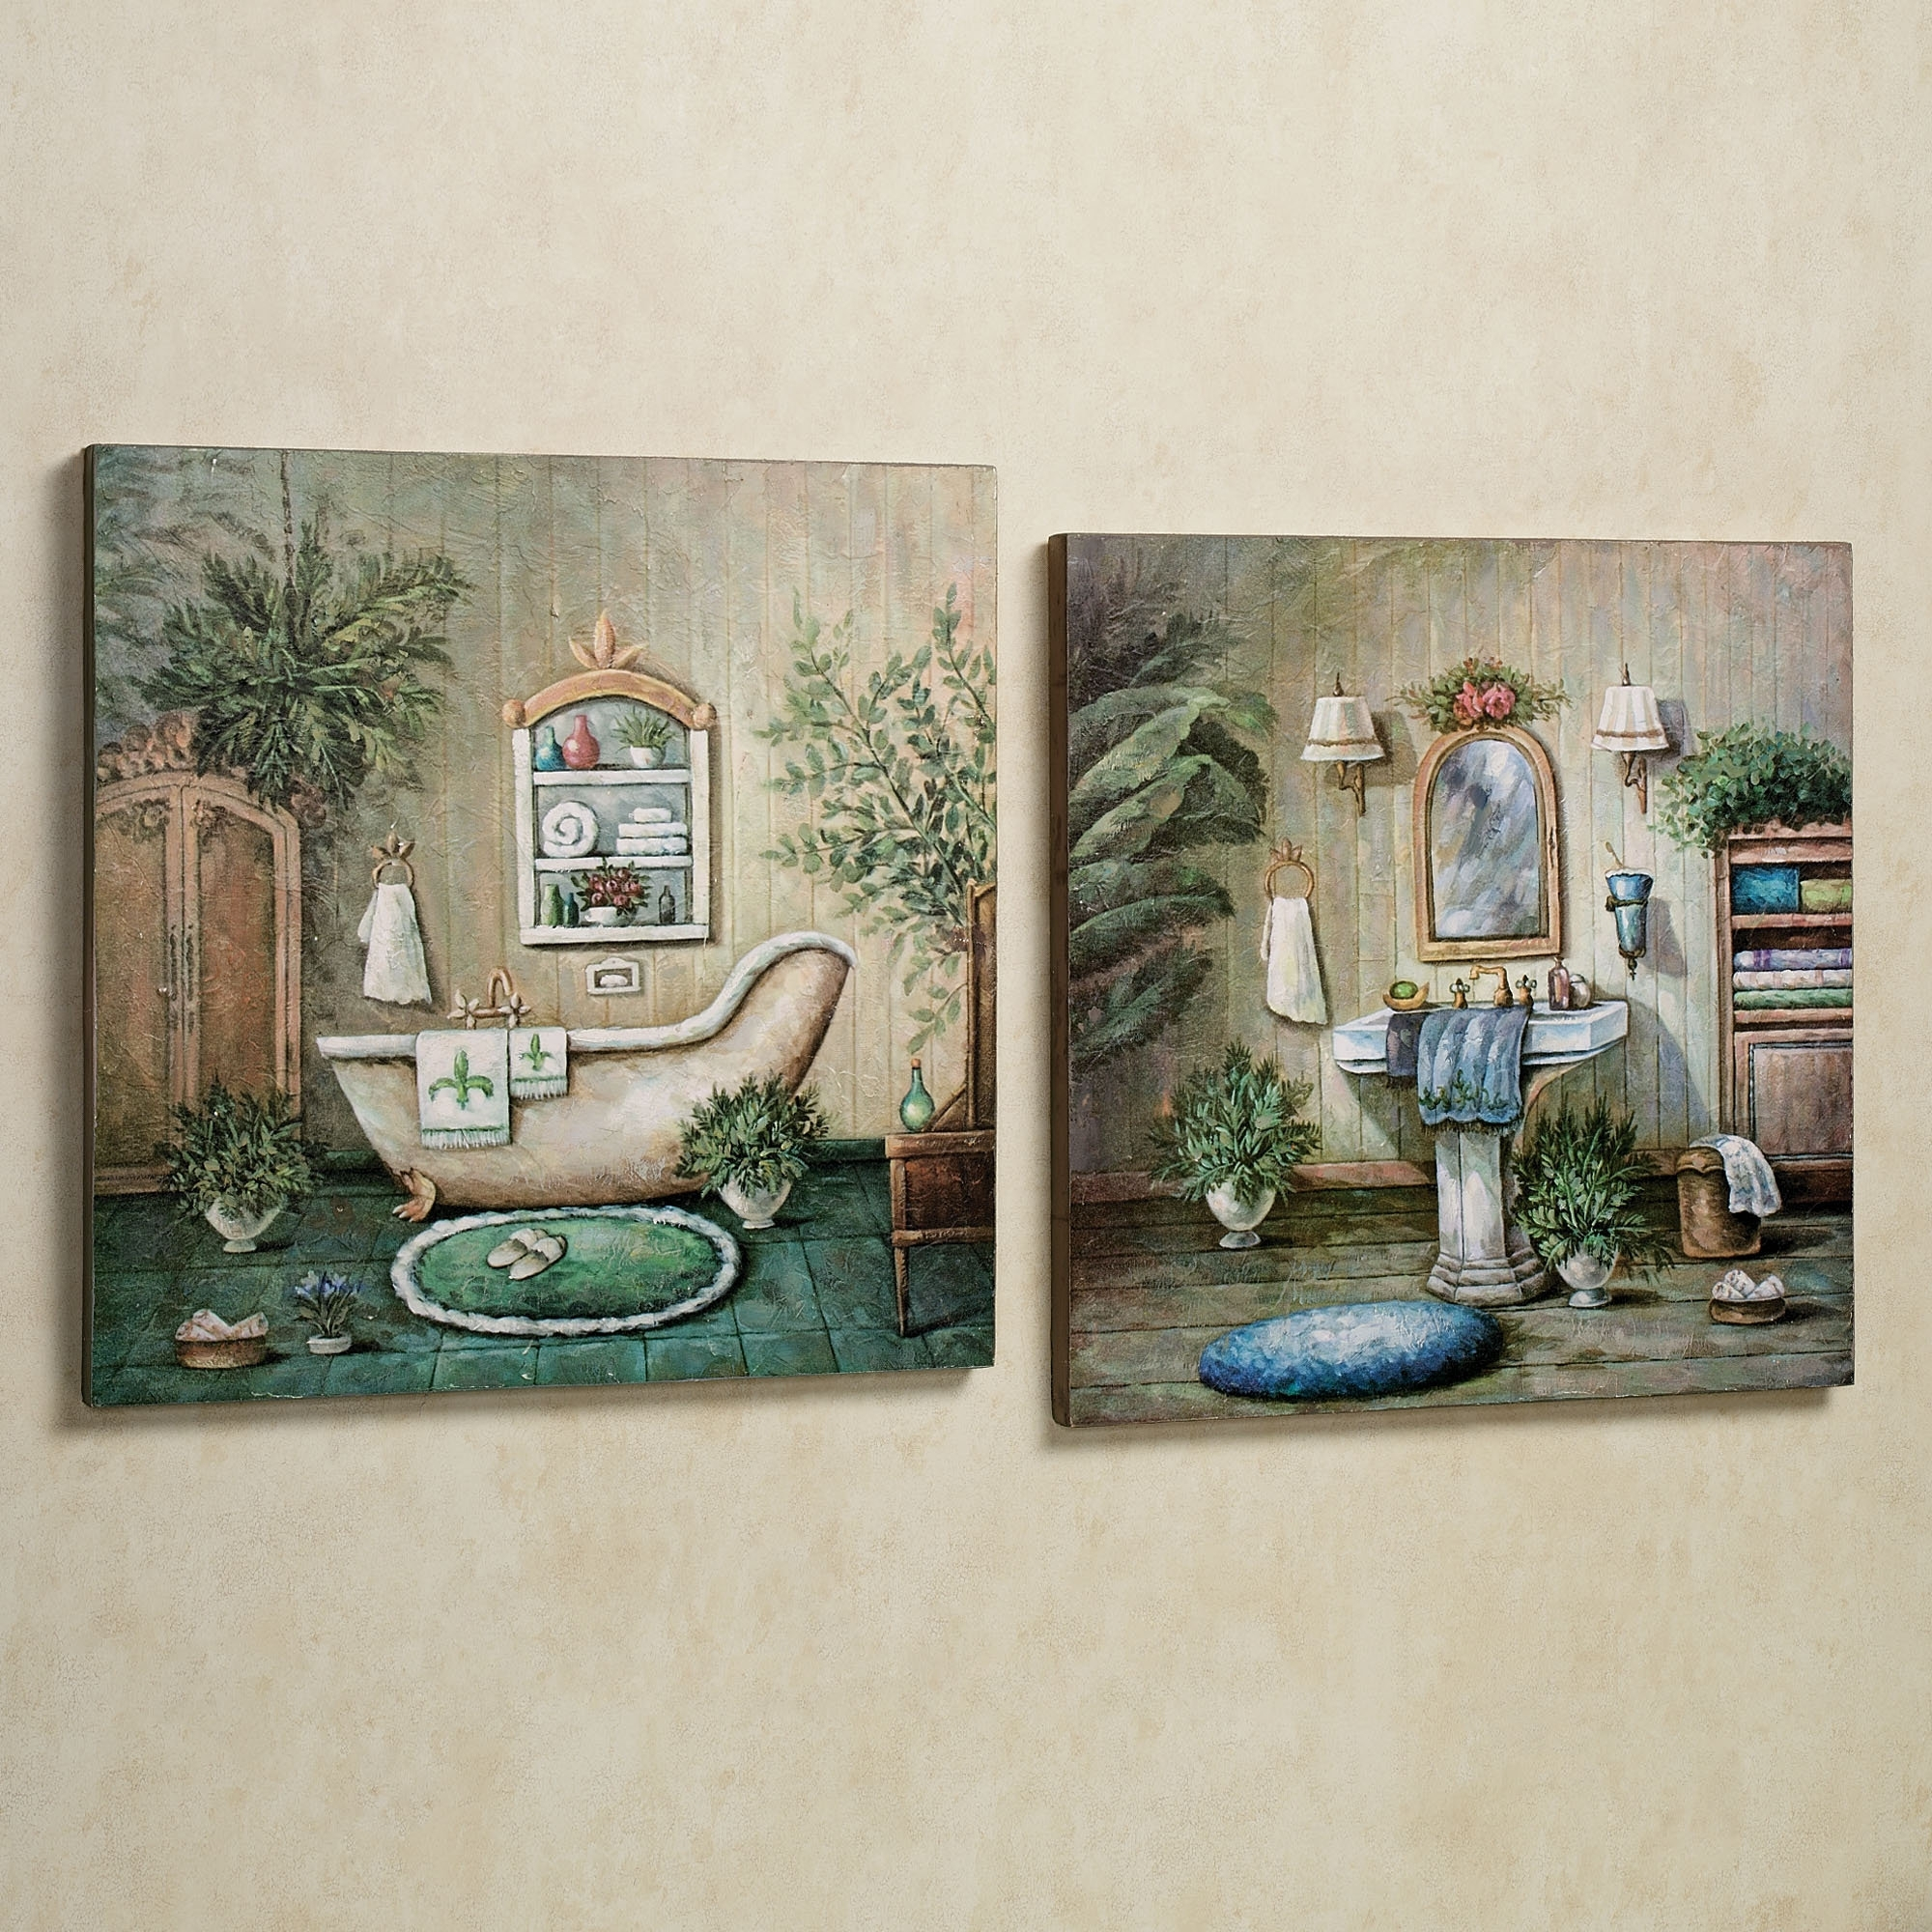 Blissful Bath Wooden Wall Art Plaque Set | Wall Decor | Pinterest With Regard To Most Up To Date Vintage Bath Framed Art Prints Set Of 3 (Gallery 9 of 15)